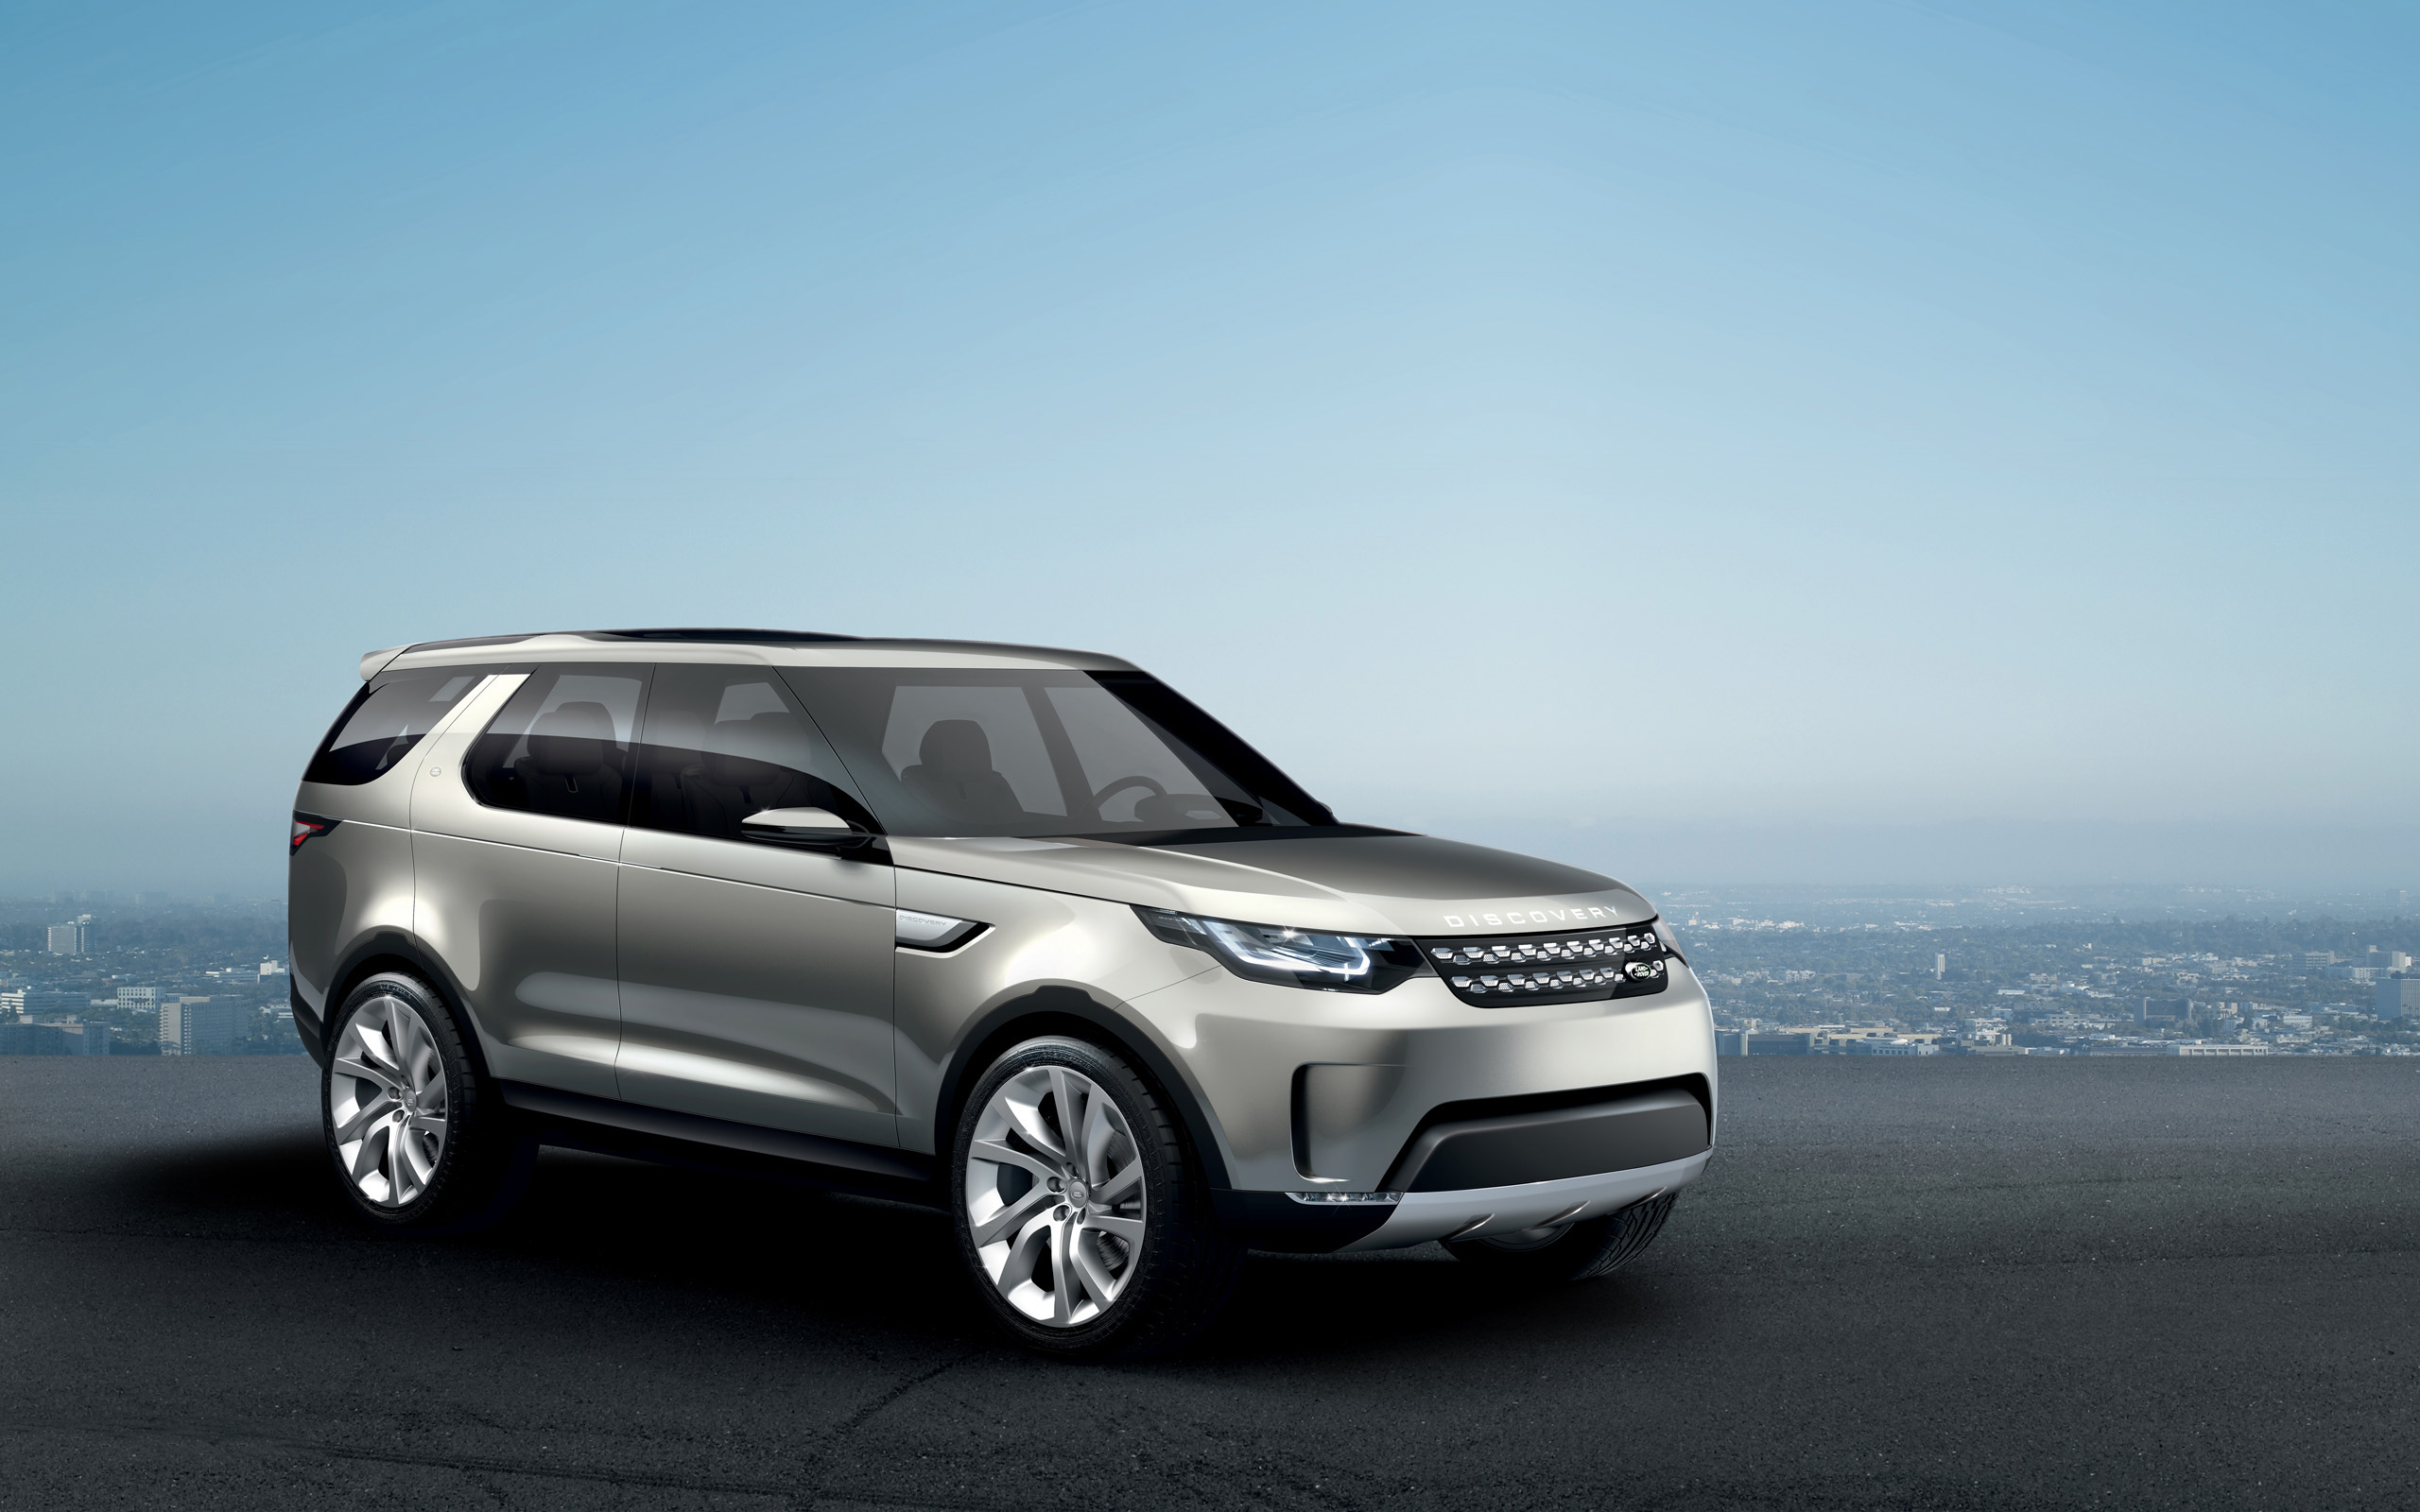 http://www.hdcarwallpapers.com/walls/2014_land_rover_discovery_vision_concept-wide.jpg